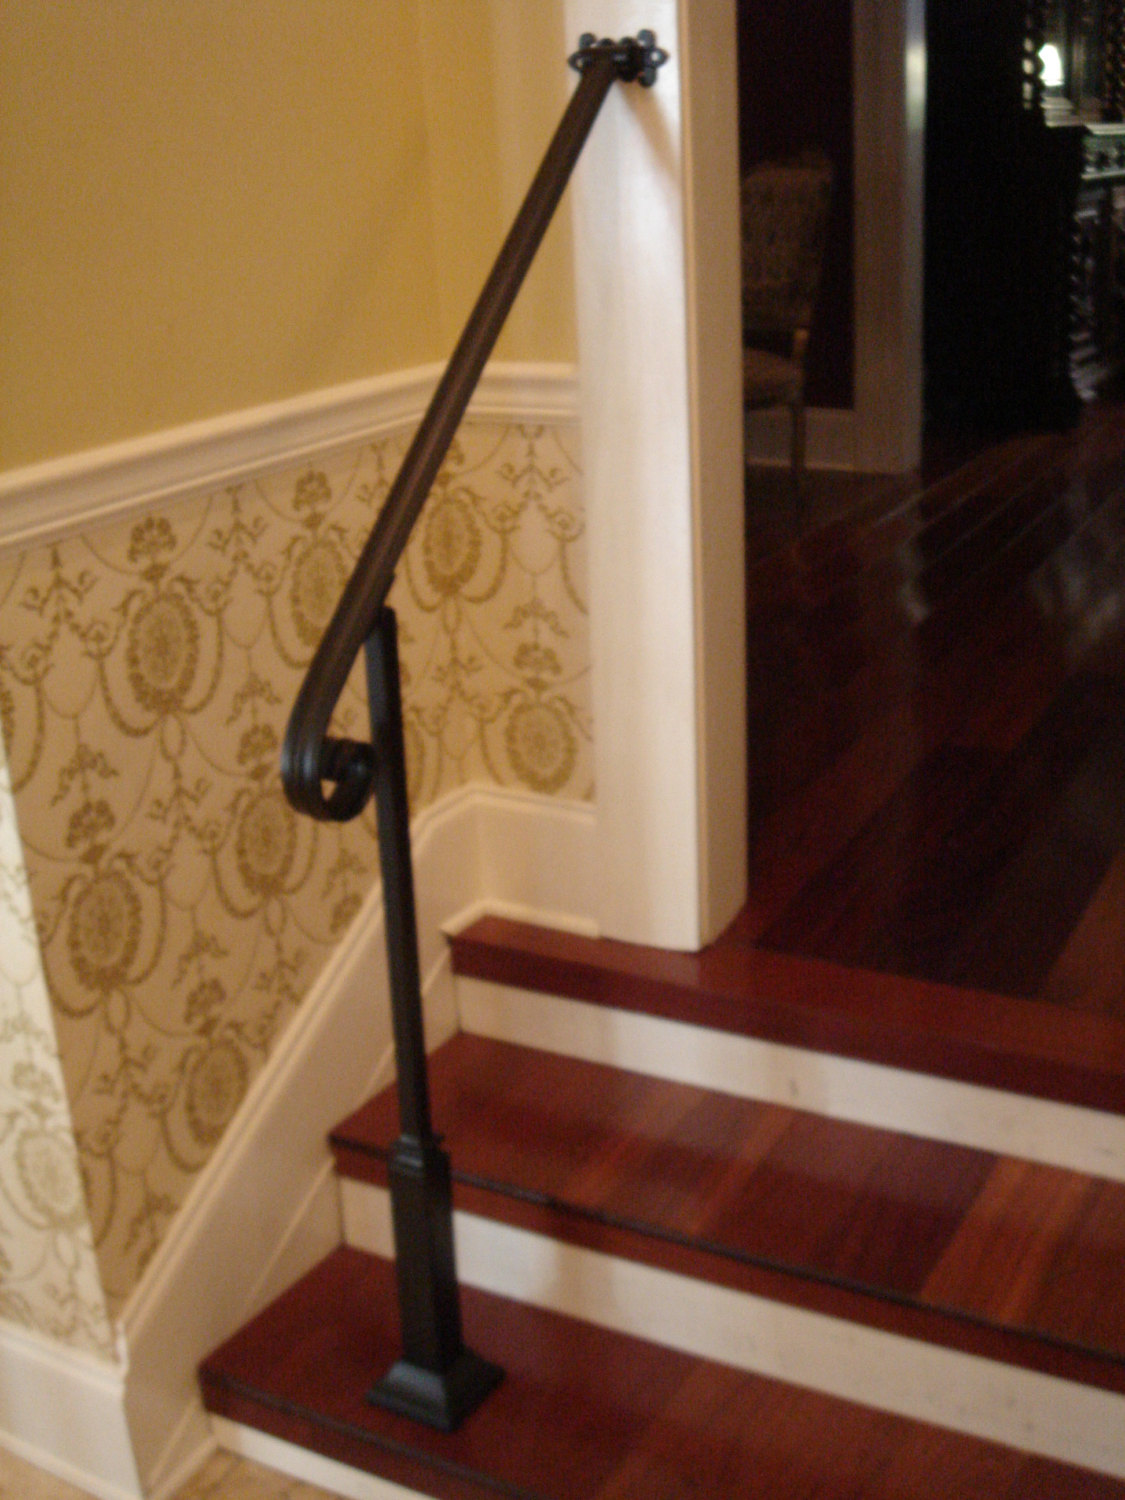 4 Ft Wrought Iron Stair Hand Rail Wall/Post Mount Bracket U0026 Decorative Post  Interior Or Exterior